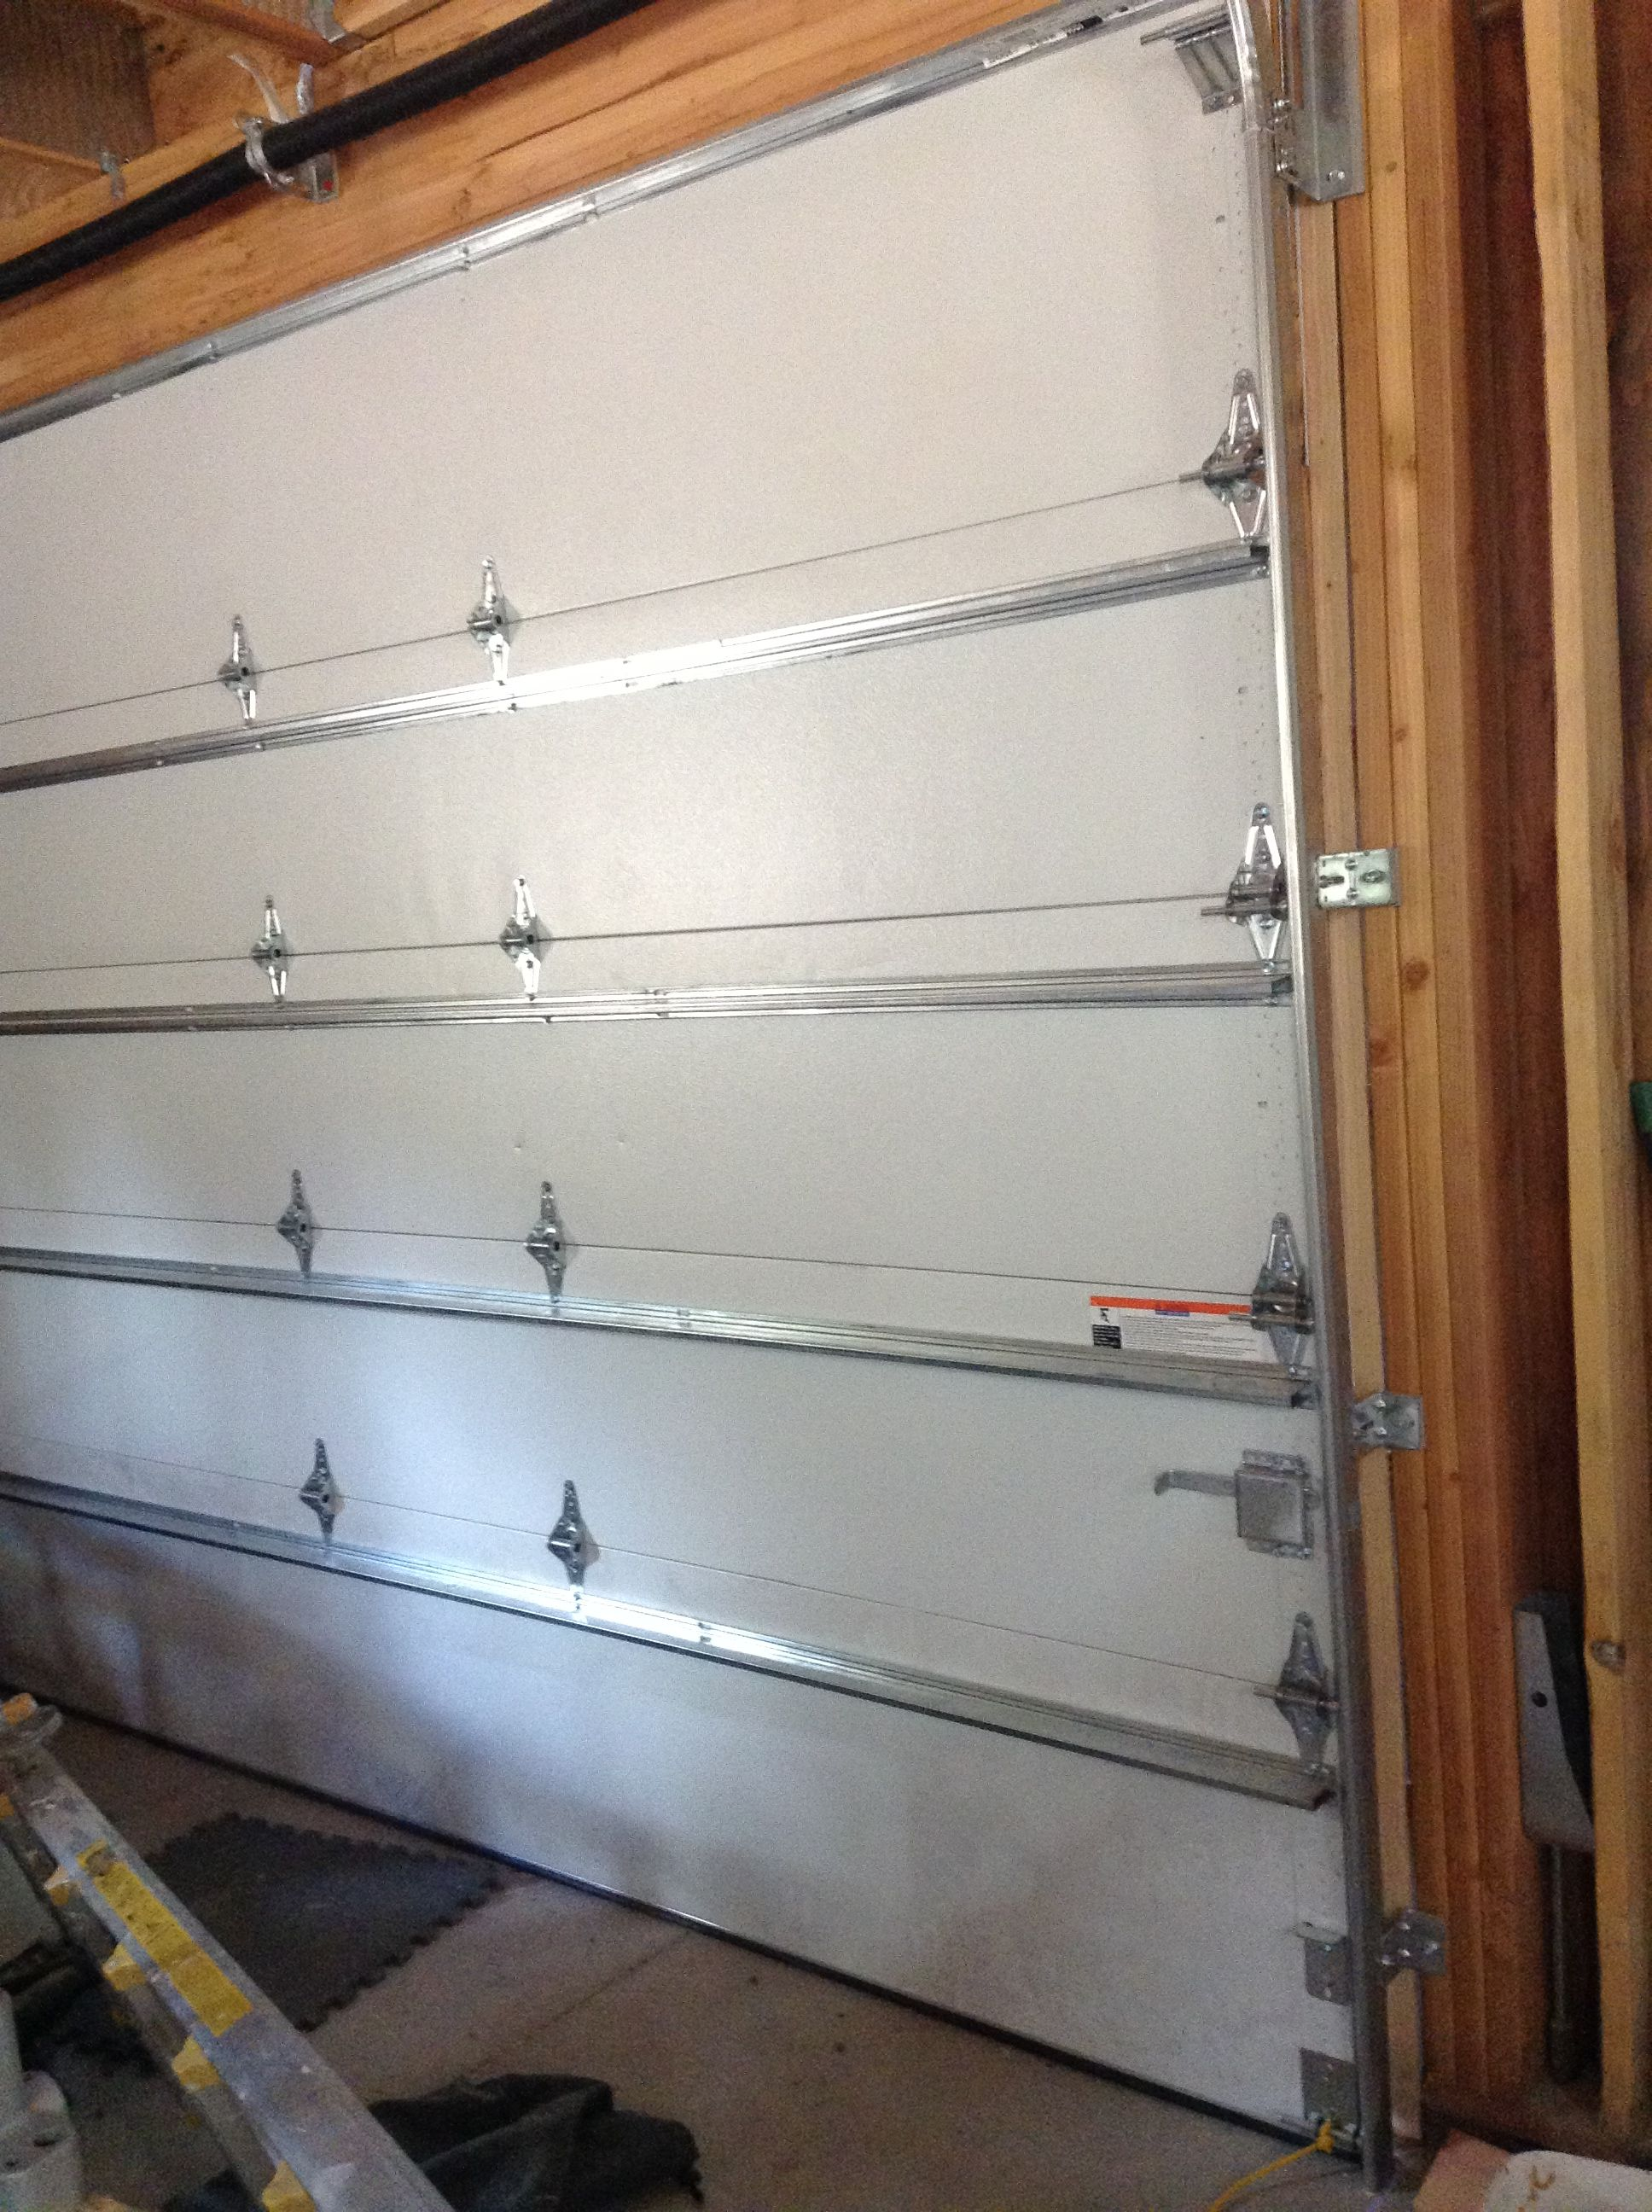 Ordinary Insulated Steel Sectional Garage Door These 10 Sections Weigh 325 Lbs Cost For Two 10 Sectional Garage Doors Wooden Garage Doors Garage Door Cost